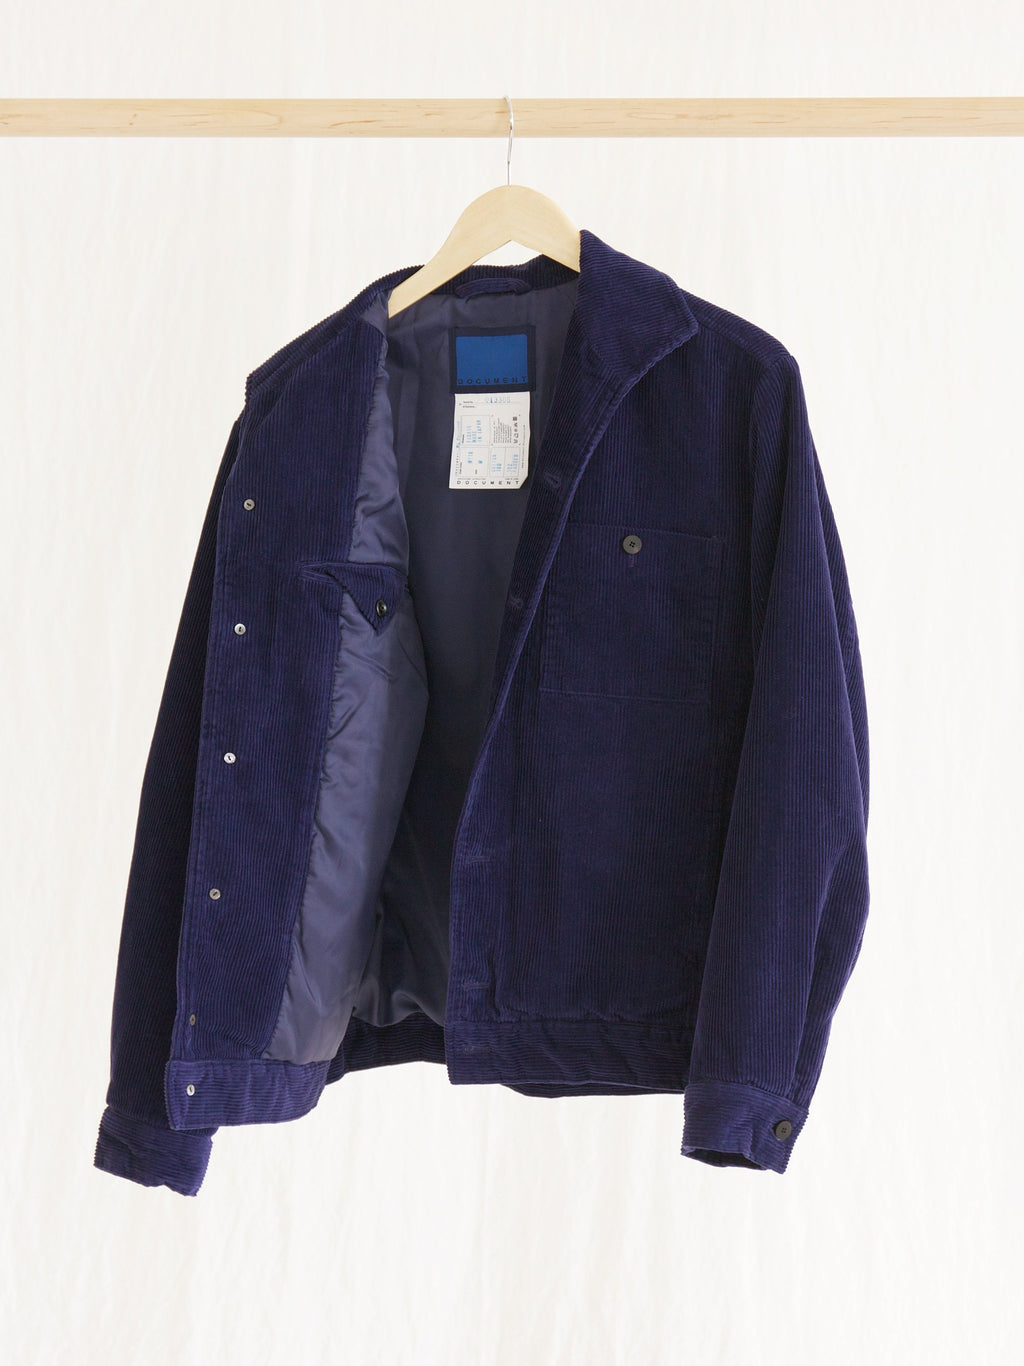 Namu Shop - Document Blue Corduroy Jacket